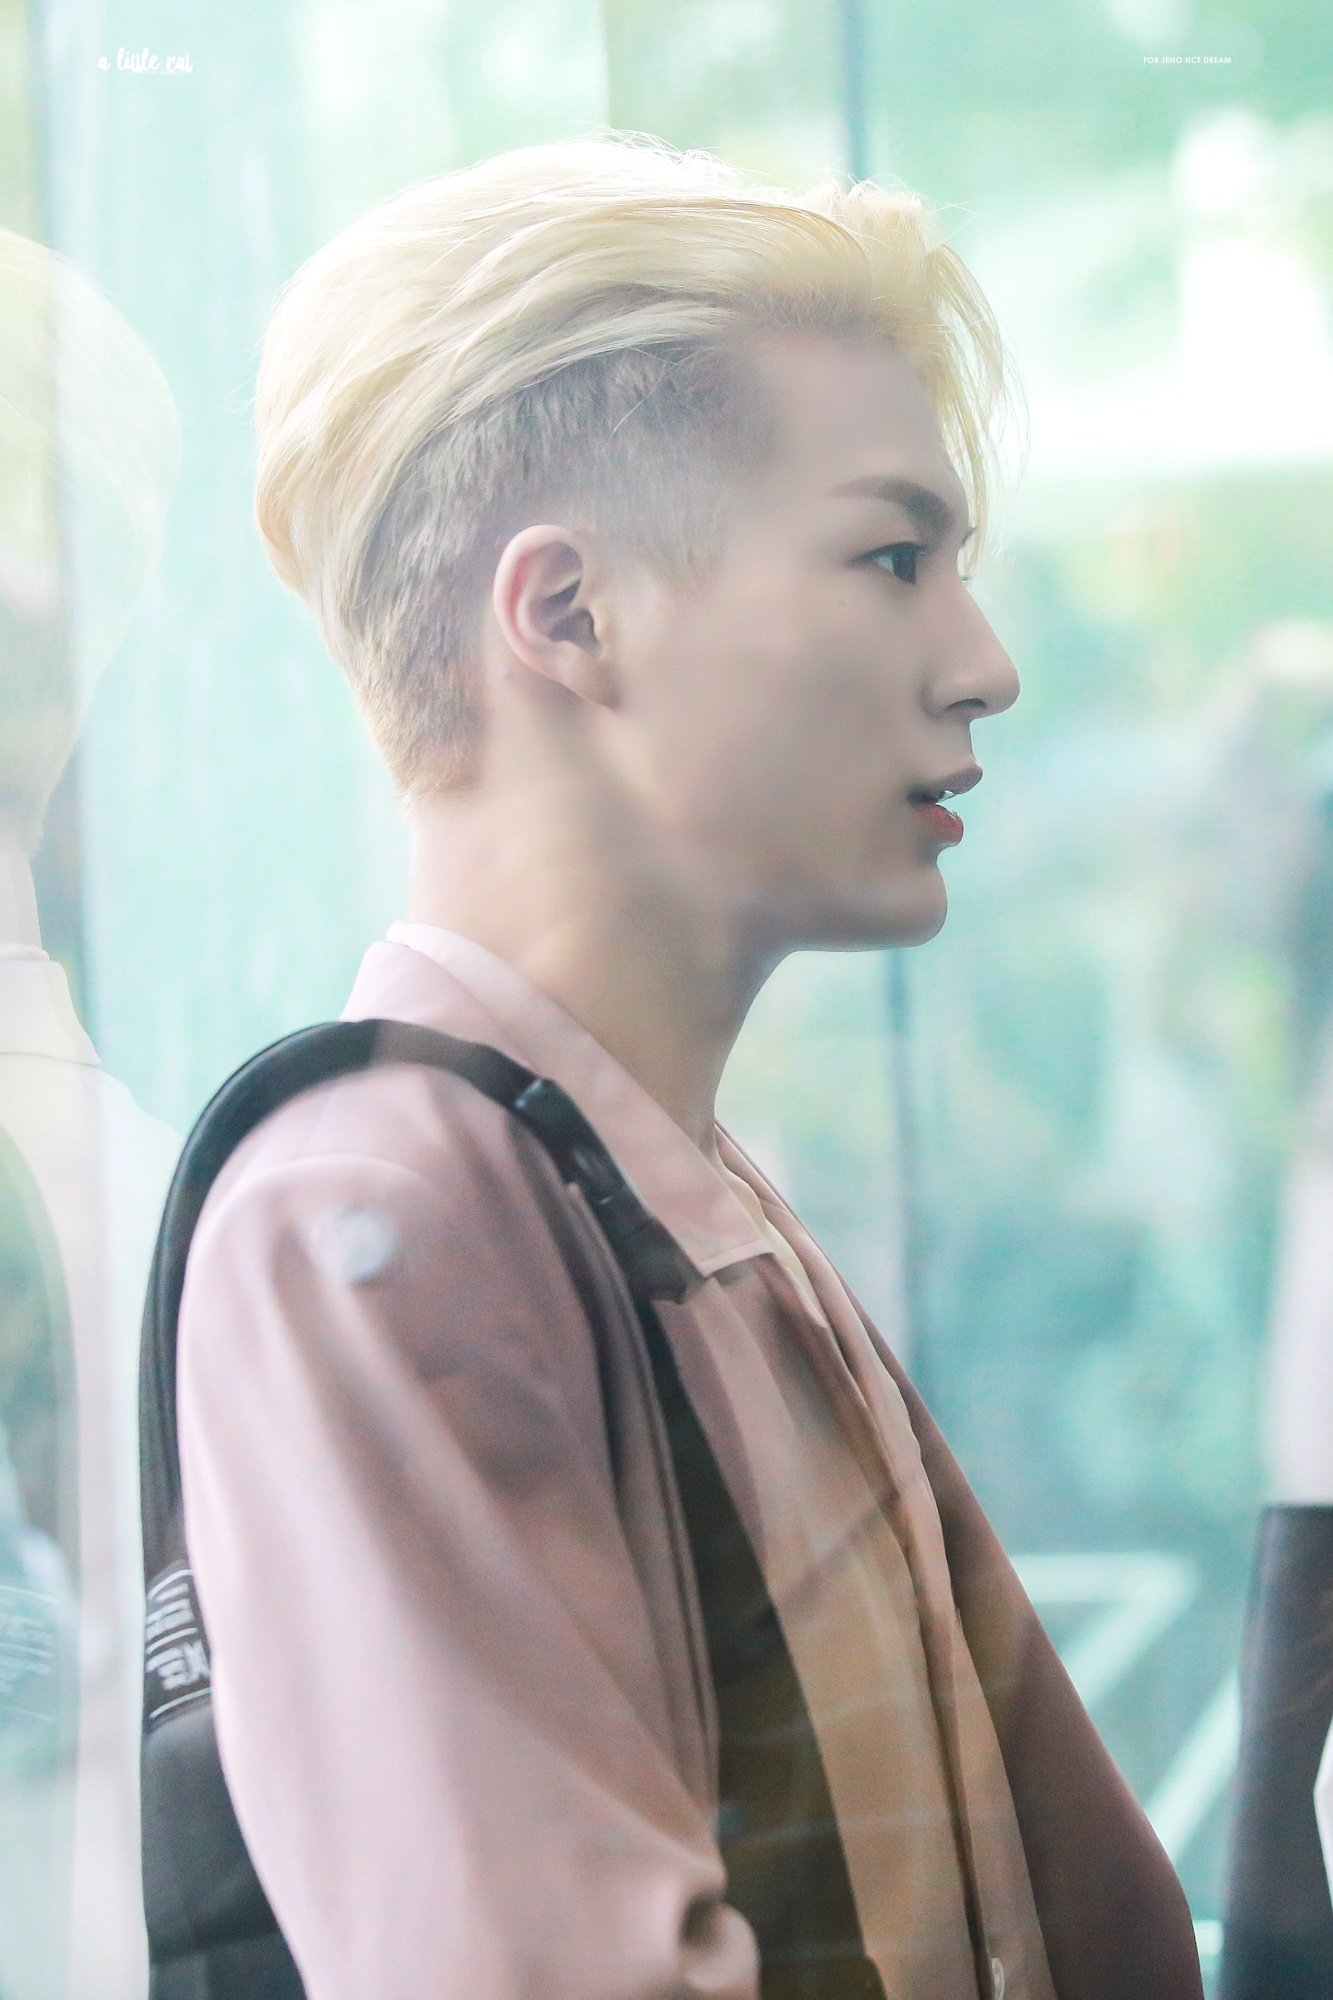 nct, nct profile, nct facts, nct height, nct weight, nct age, nct leader, nct facts, nct 127, nct dream, nct u, nct jeno, jeno